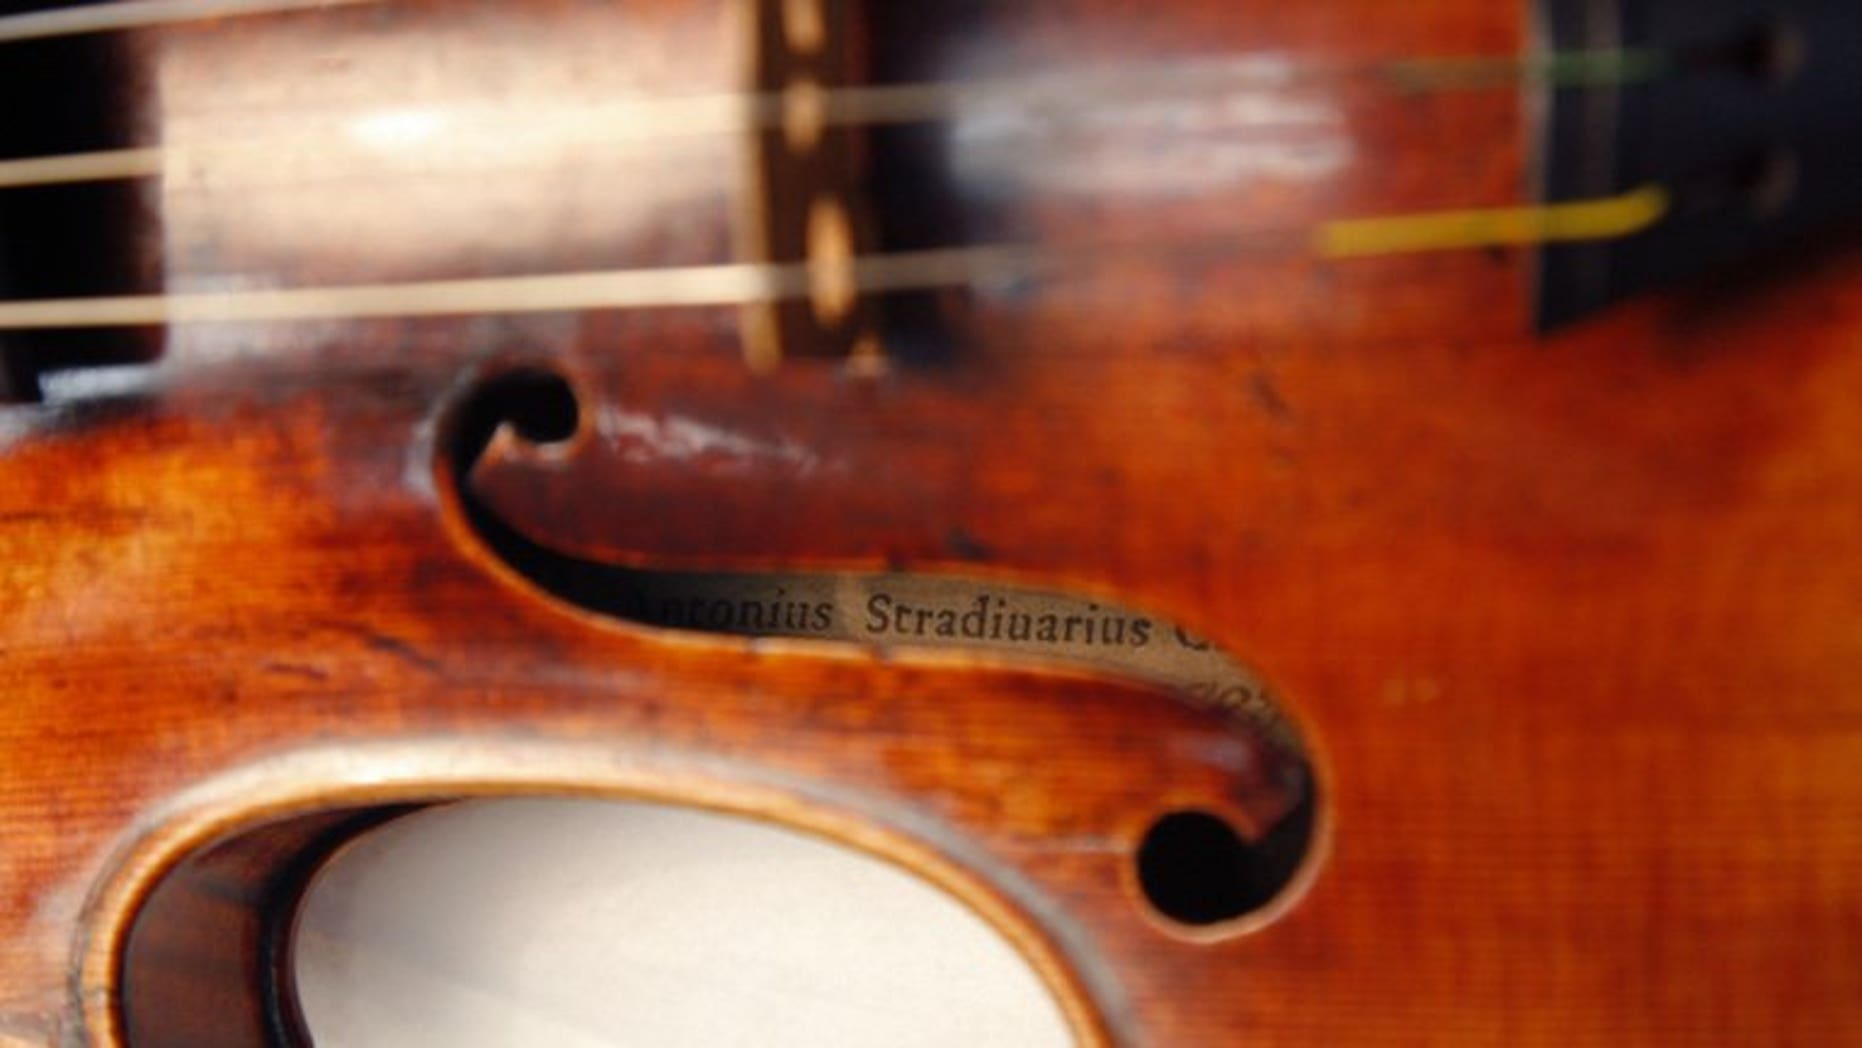 A Stradivarius violin is pictured at the Musee de la Musique in Paris, on December 3, 2009. British police have recovered a rare Stradivarius violin worth ??1.2 million ($1.8 million, 1.4 million euros) that was stolen from its owner in a London railway cafe in 2010.